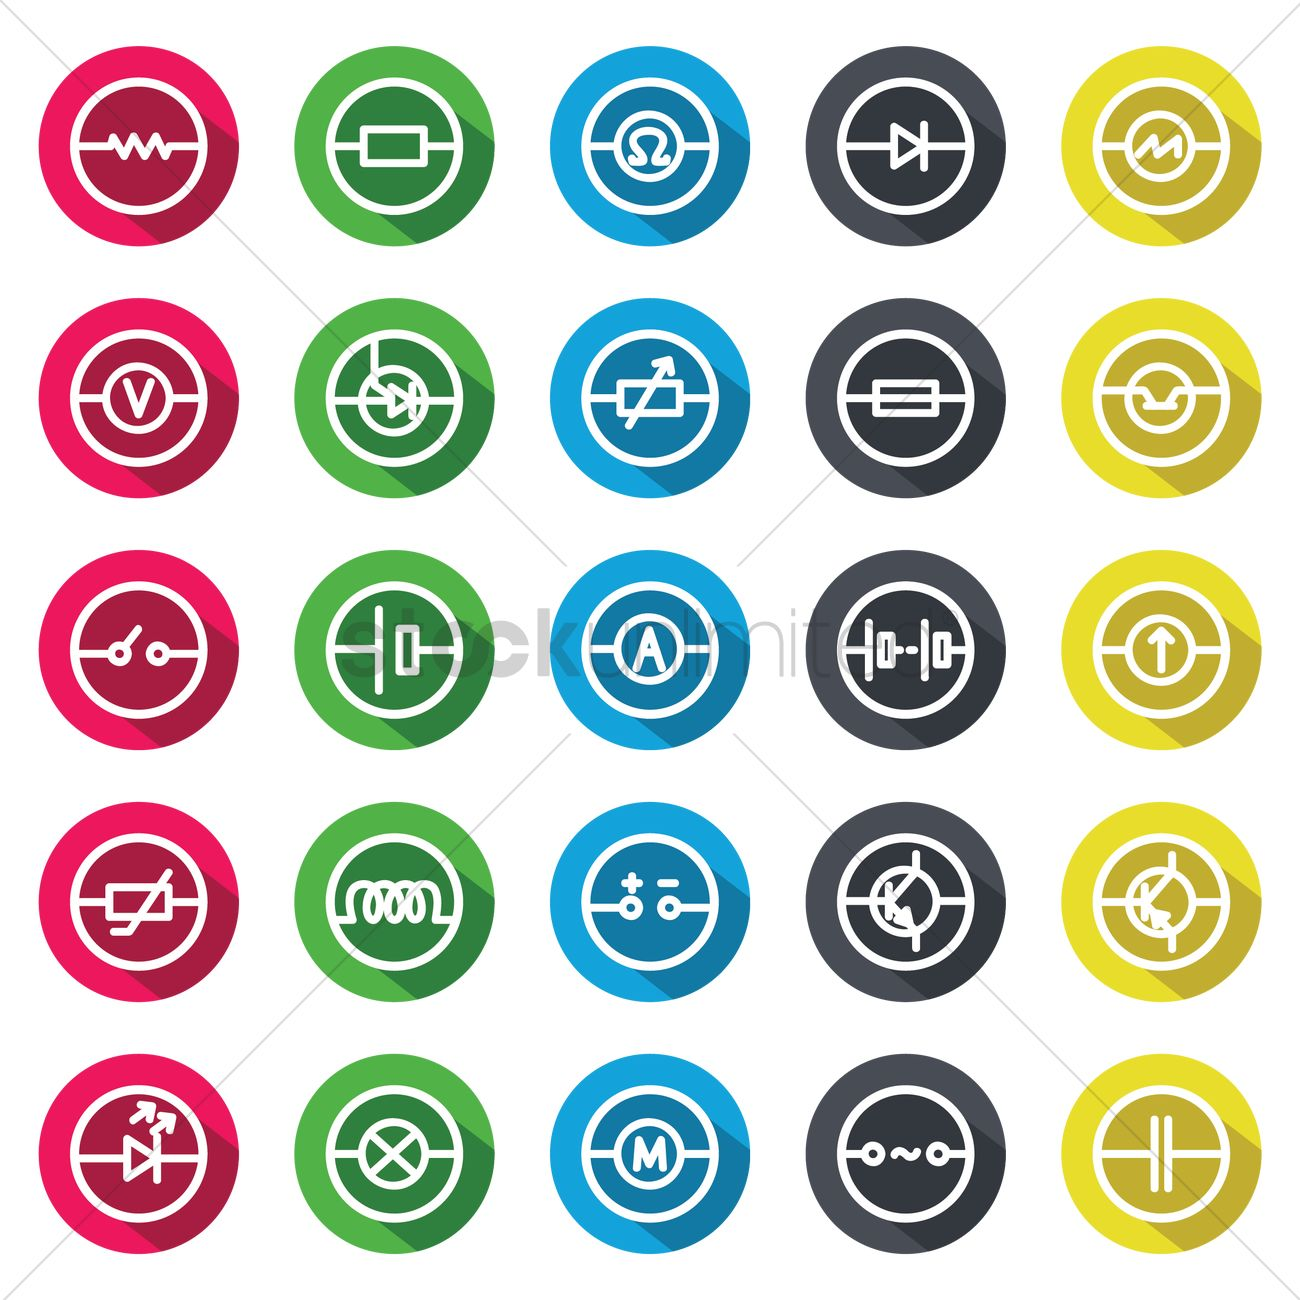 Electric circuit symbol icon set Vector Image - 1248267 | StockUnlimited